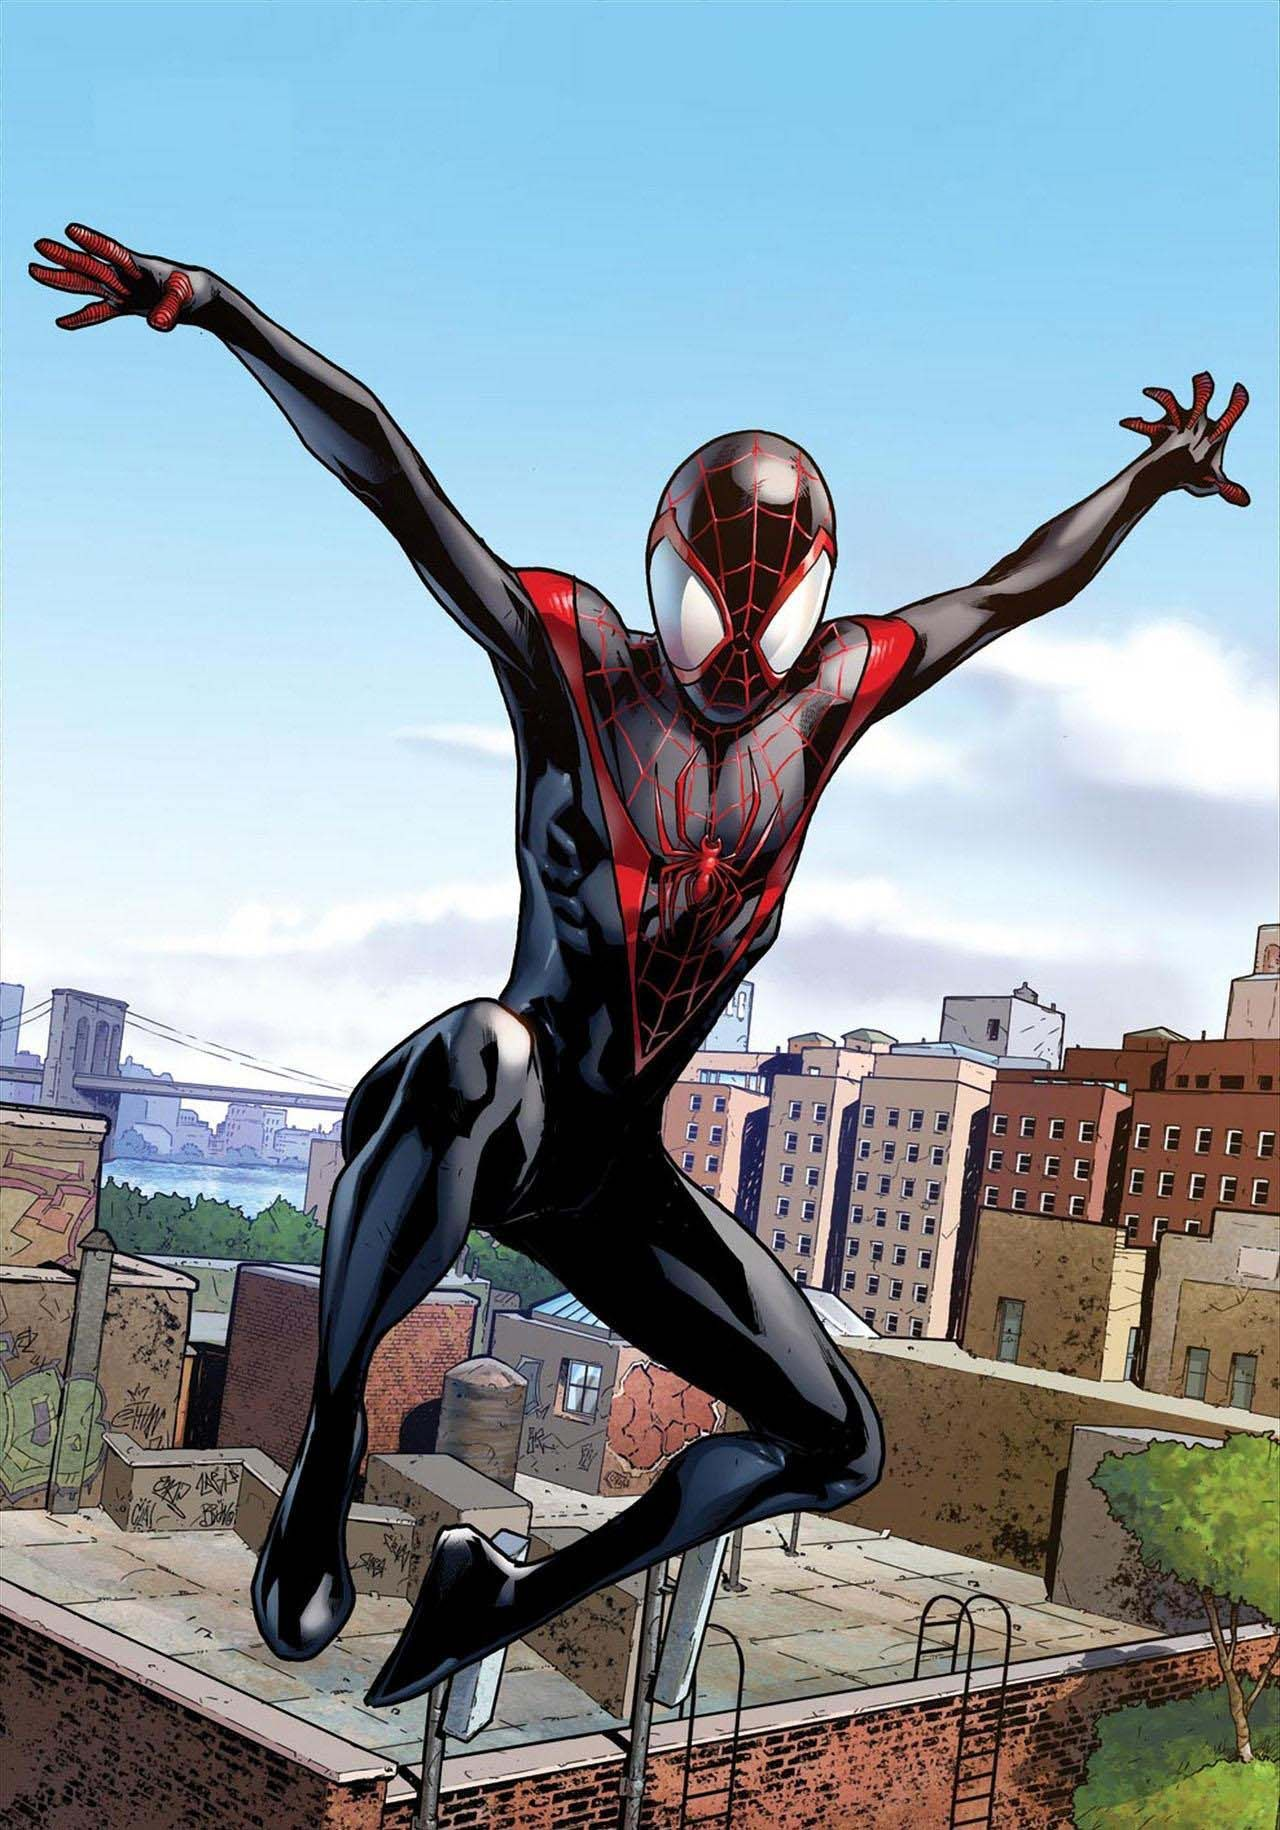 Ultimate Spider-Man (Miles Morales) | comics | Pinterest ...